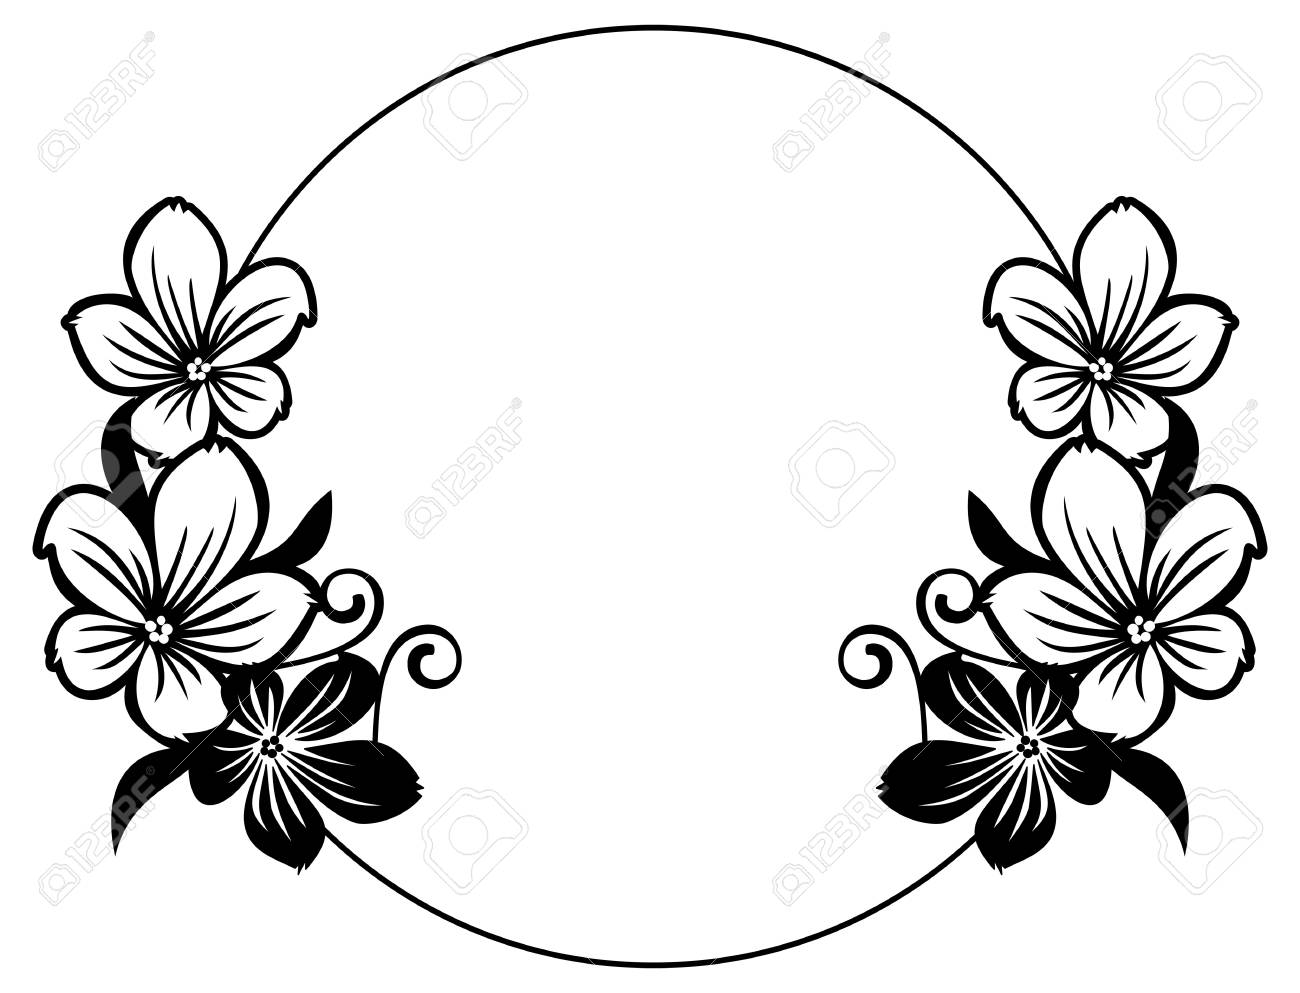 Black and white round frame with abstract flowers silhouettes.